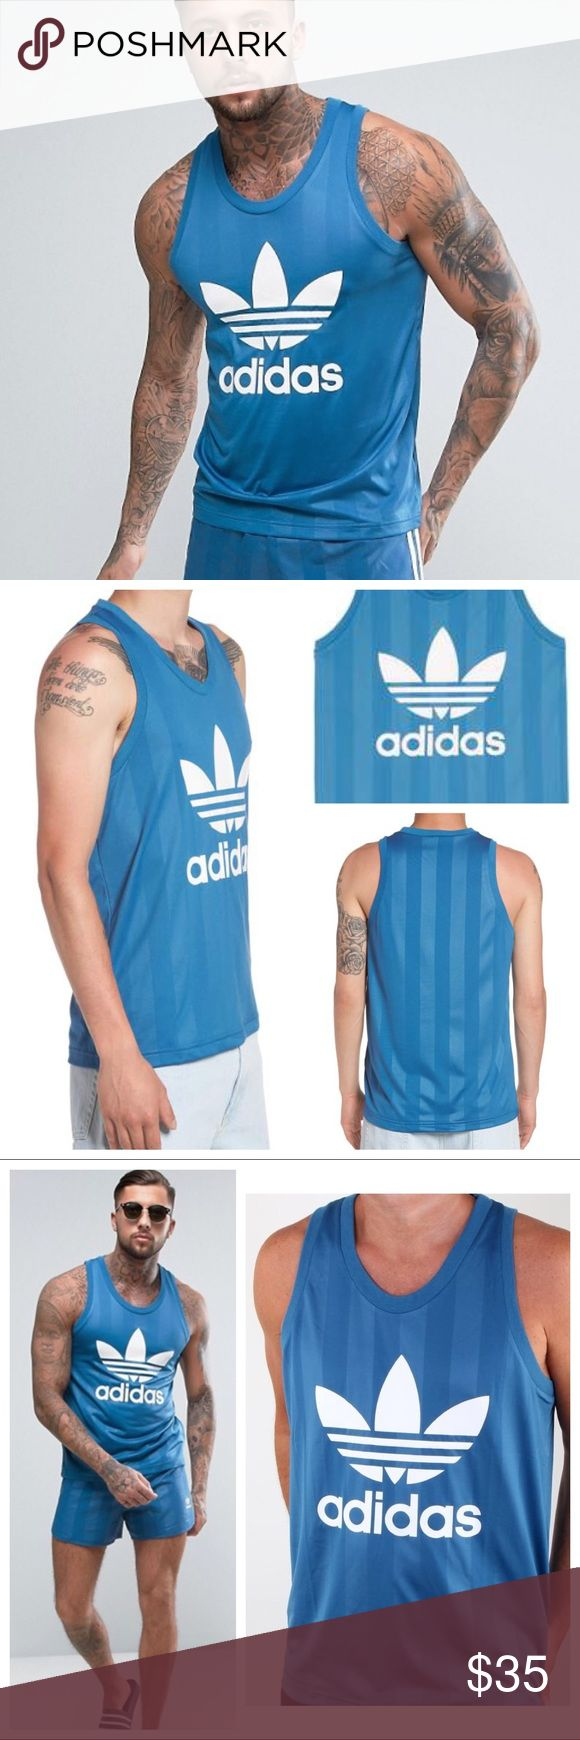 🌼 Adidas Trefoil Tank (Men M) * Adidas originals smooth woven jersey/trefoil graphic tank for men. Super comfortable polyester material that's silky smooth. Features a subtle tonal stripes of blue with the classic logo in white. Scoop neck, ribbed trim, sleeveless, true to size, regular trim fit.  * Easy to throw, casual street style, retro/vintage inspired; on trend style. * Size: Medium (Large available in separate listing) * Check out Adidas SnapBack hat  * Feel free to ask any questions…